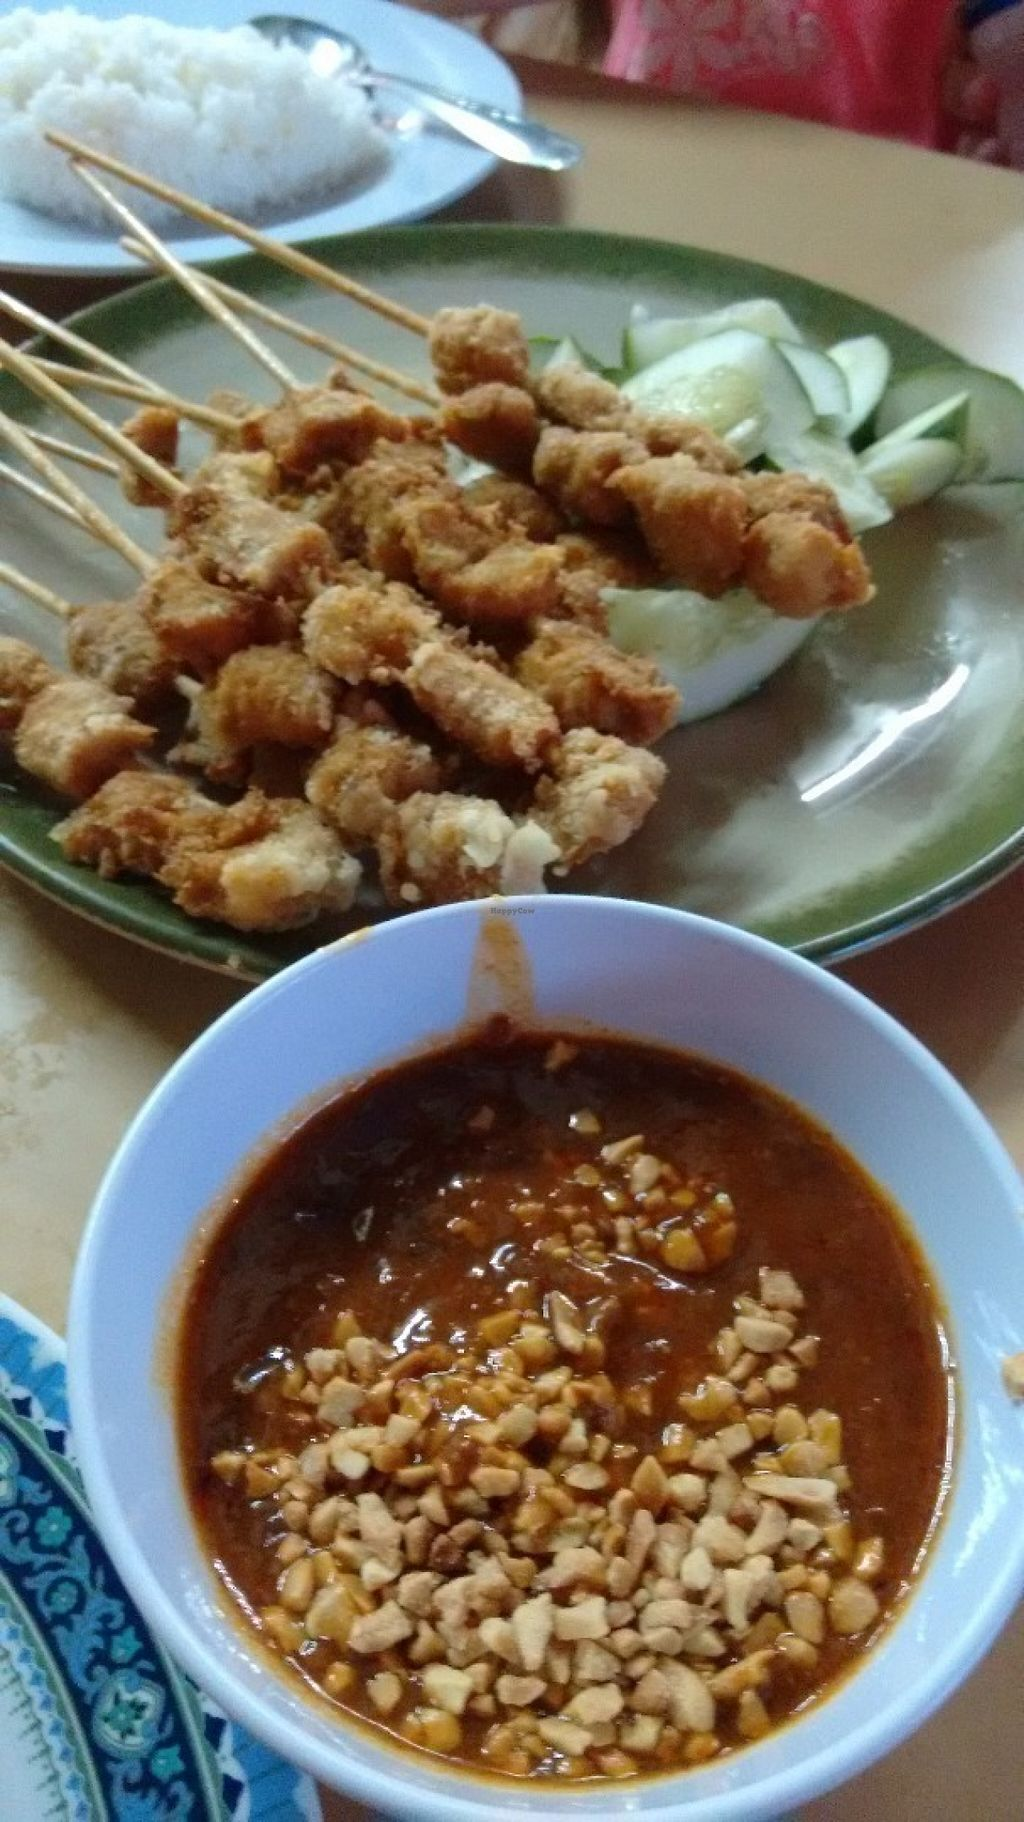 "Photo of Yi Xin Vegan Restaurant  by <a href=""/members/profile/craigmc"">craigmc</a> <br/>Satay <br/> July 12, 2016  - <a href='/contact/abuse/image/10289/159326'>Report</a>"